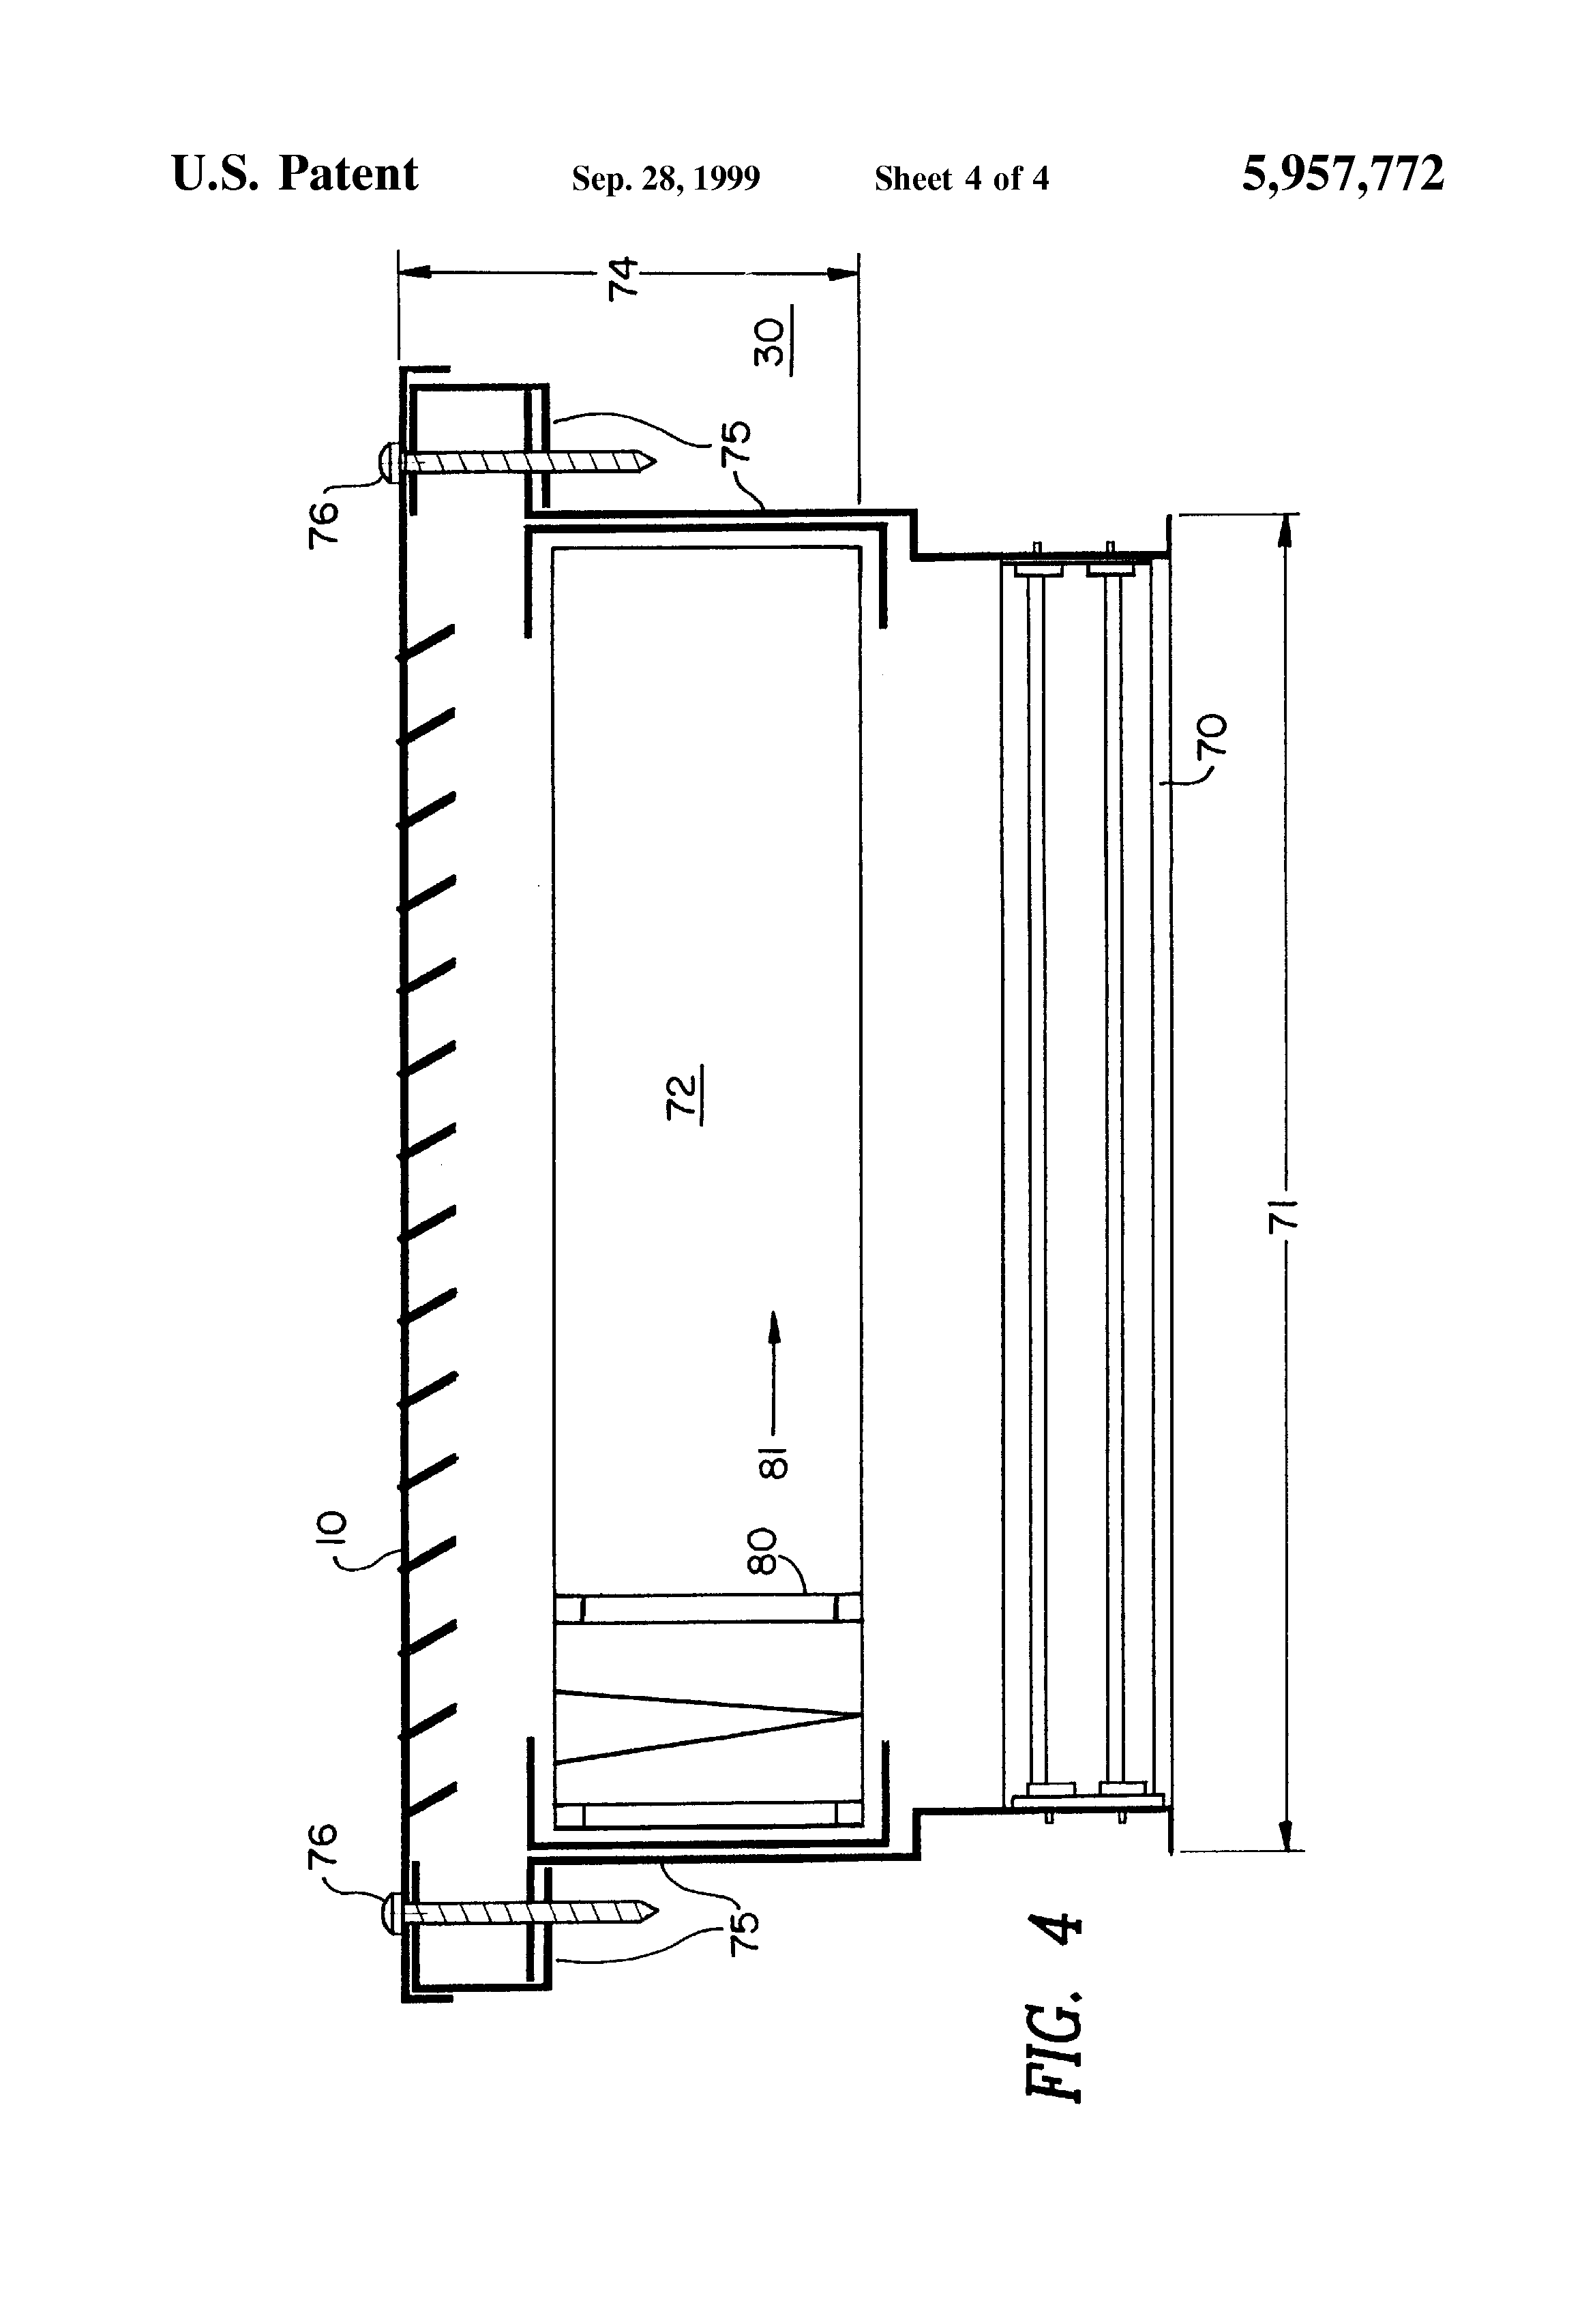 Wall Grille With Opposed Blade Damper : Patent us fire rated wall damper assembly